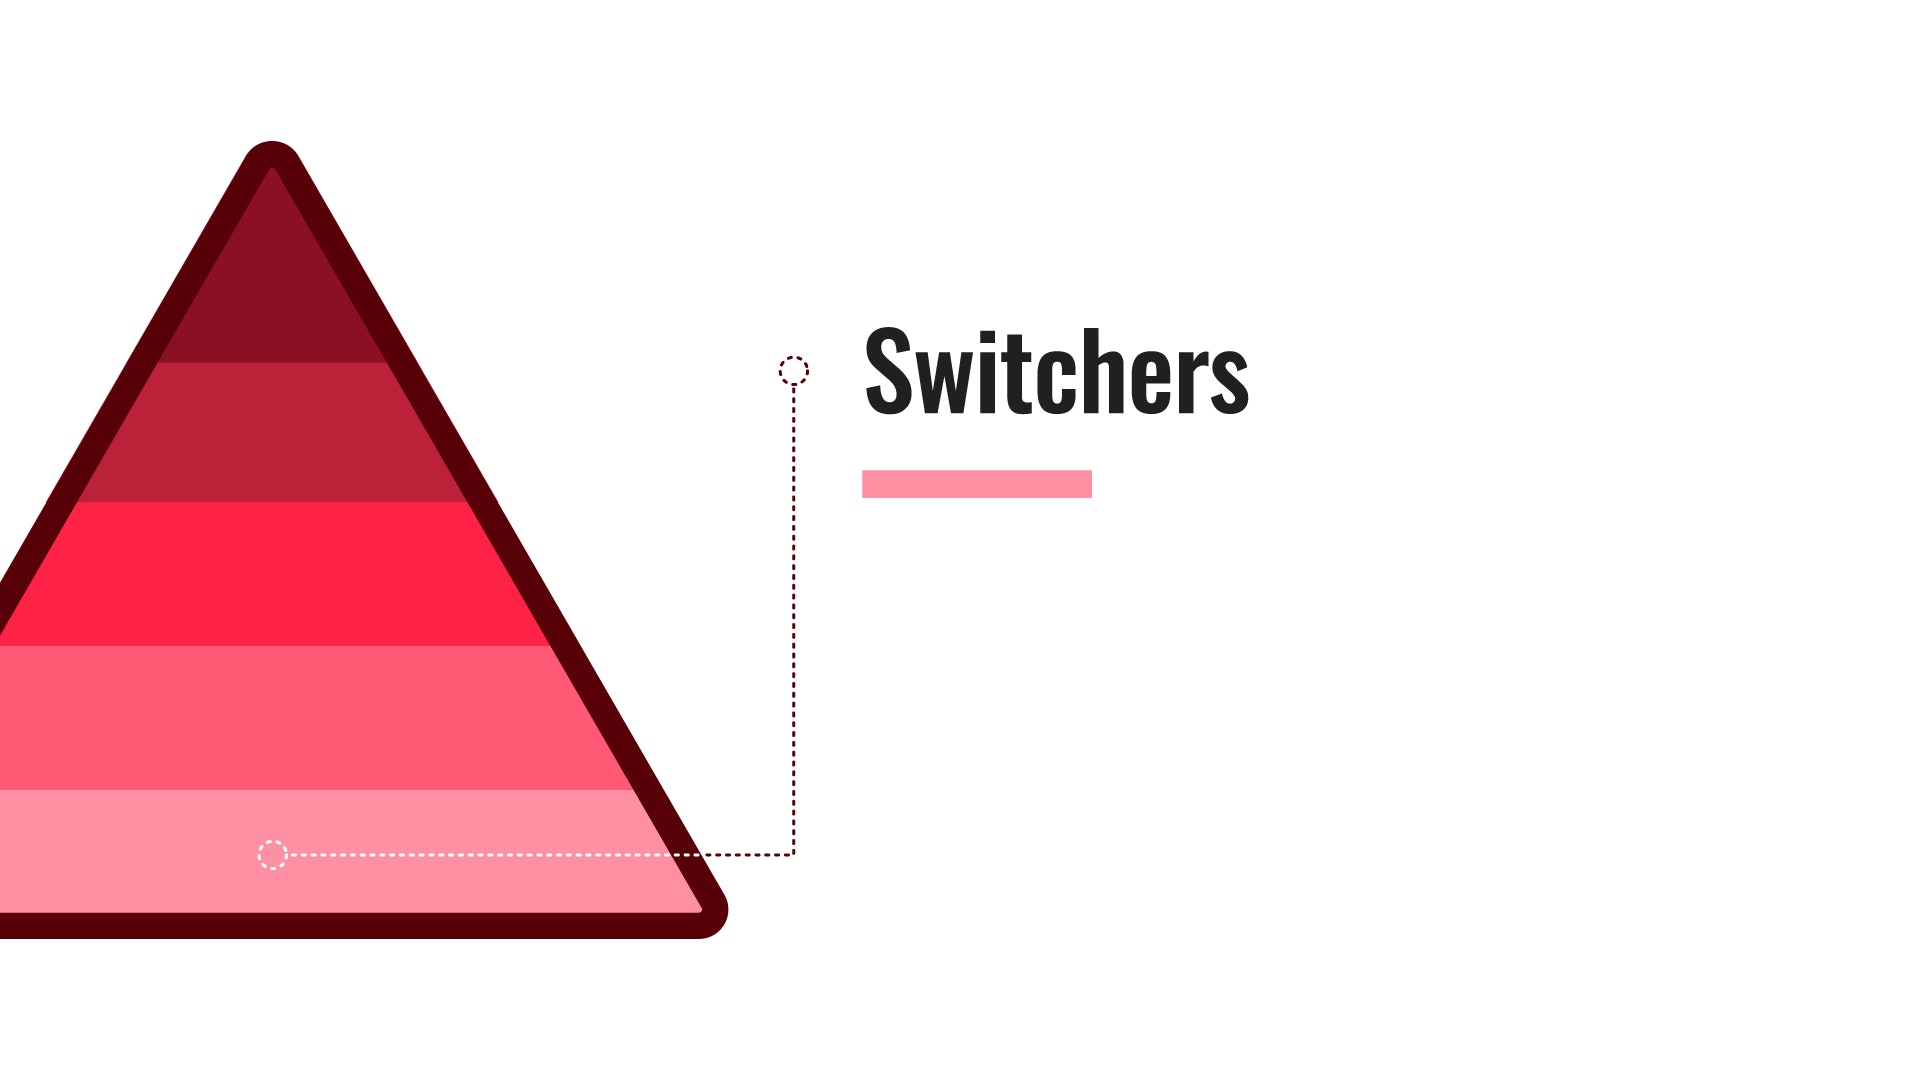 Switchers graphic